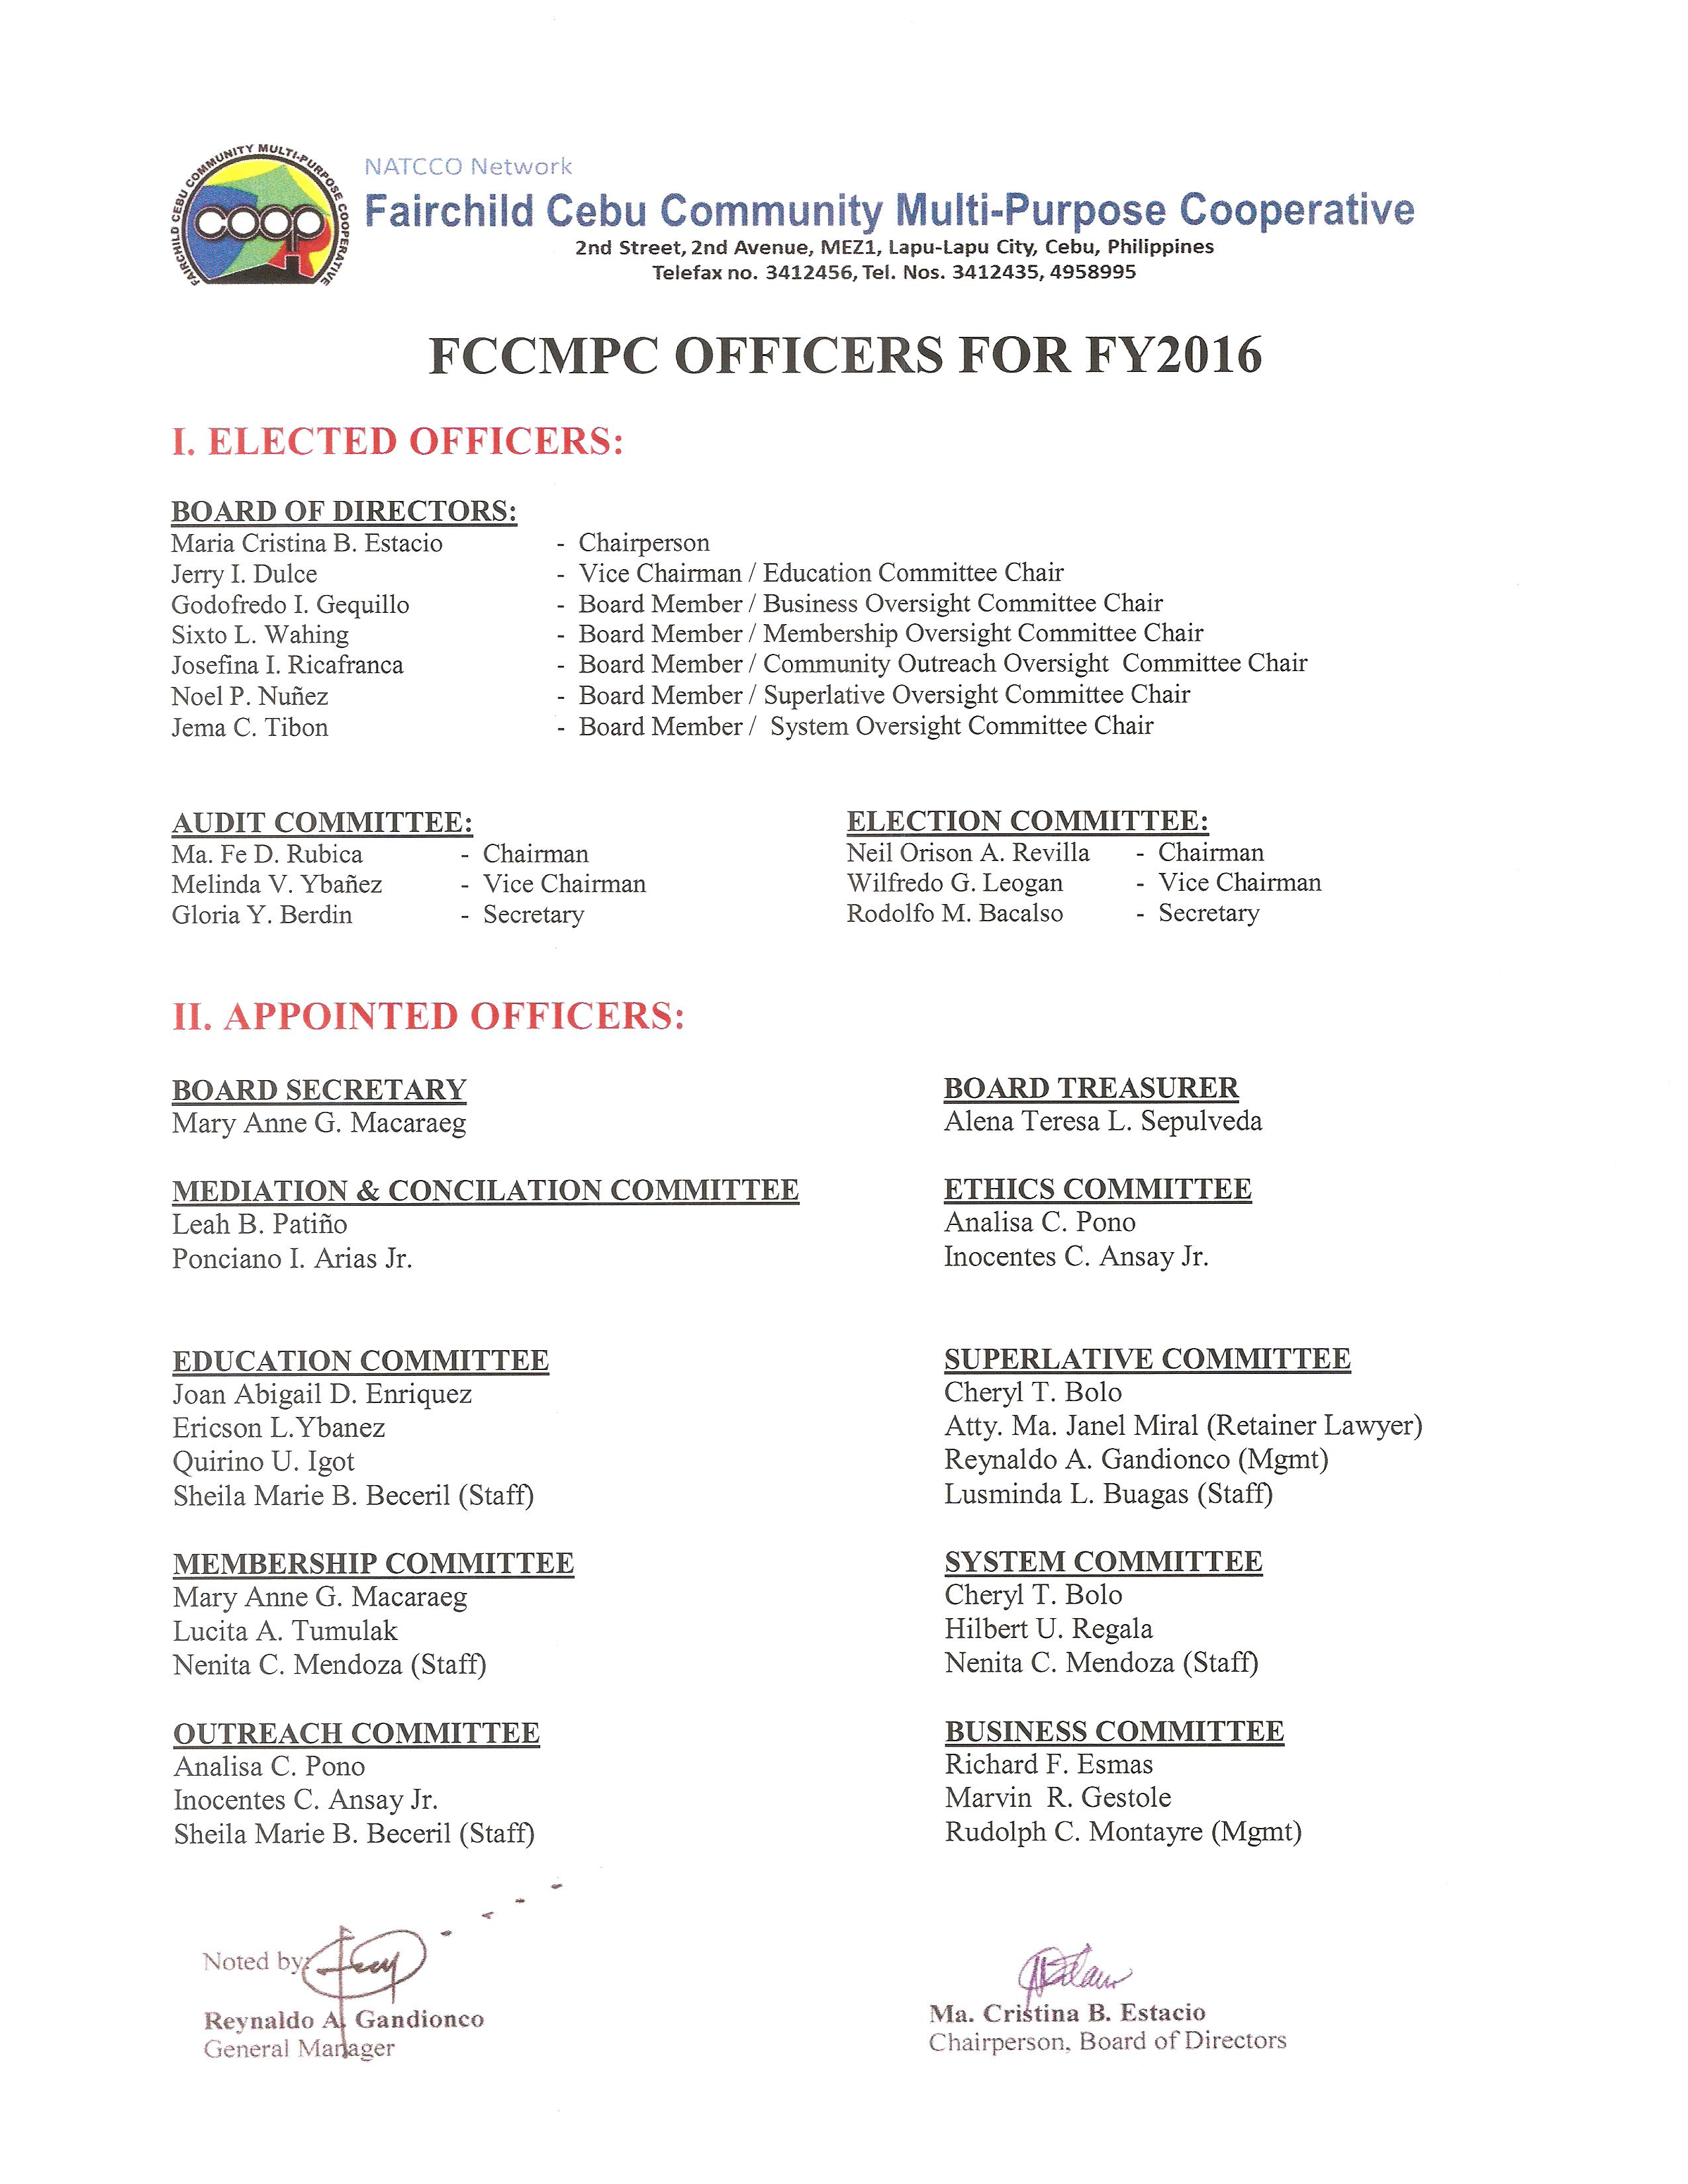 FCCMPC OFFICERS FOR FY2016